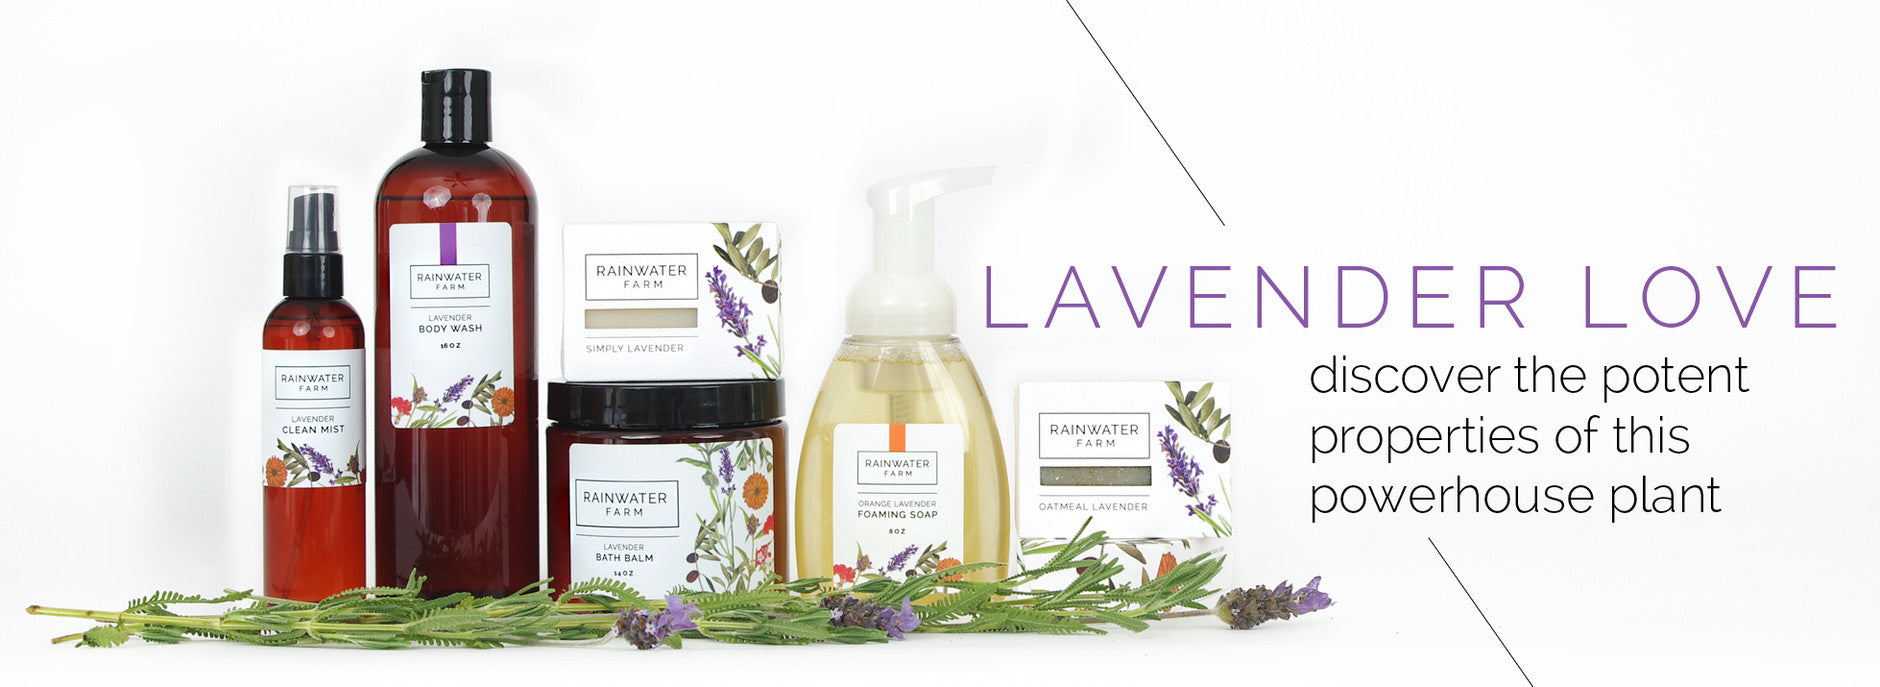 Rainwater Farm Lavender Product Line